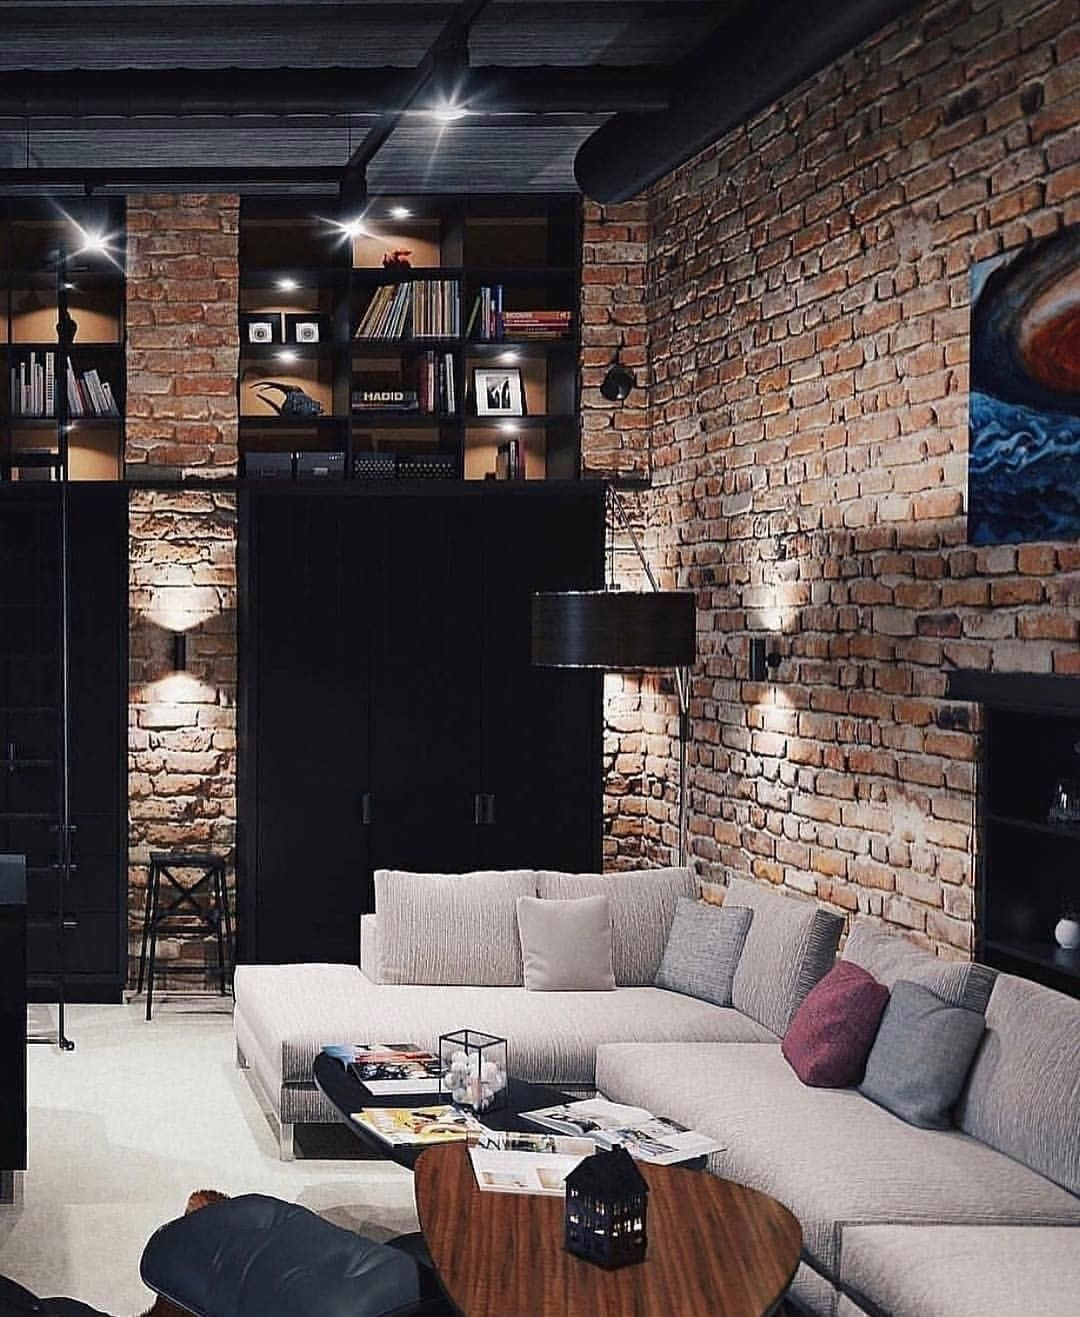 Tag Your Friends Who D Love This Design Brick Walls High Ceilings Cool Lighting Every Detail Is Beautiful Here Credits To Designer Dm Inform